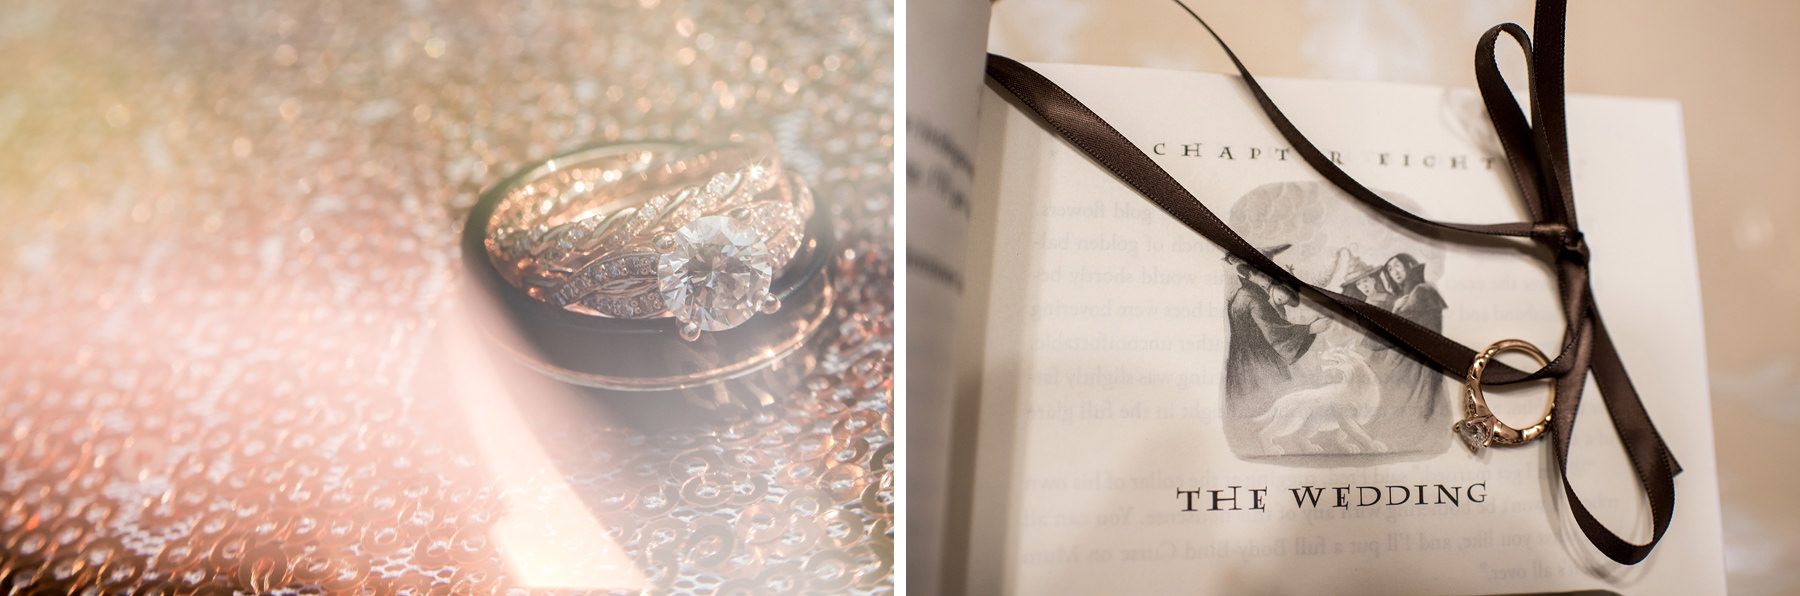 harry potter book and wedding ring